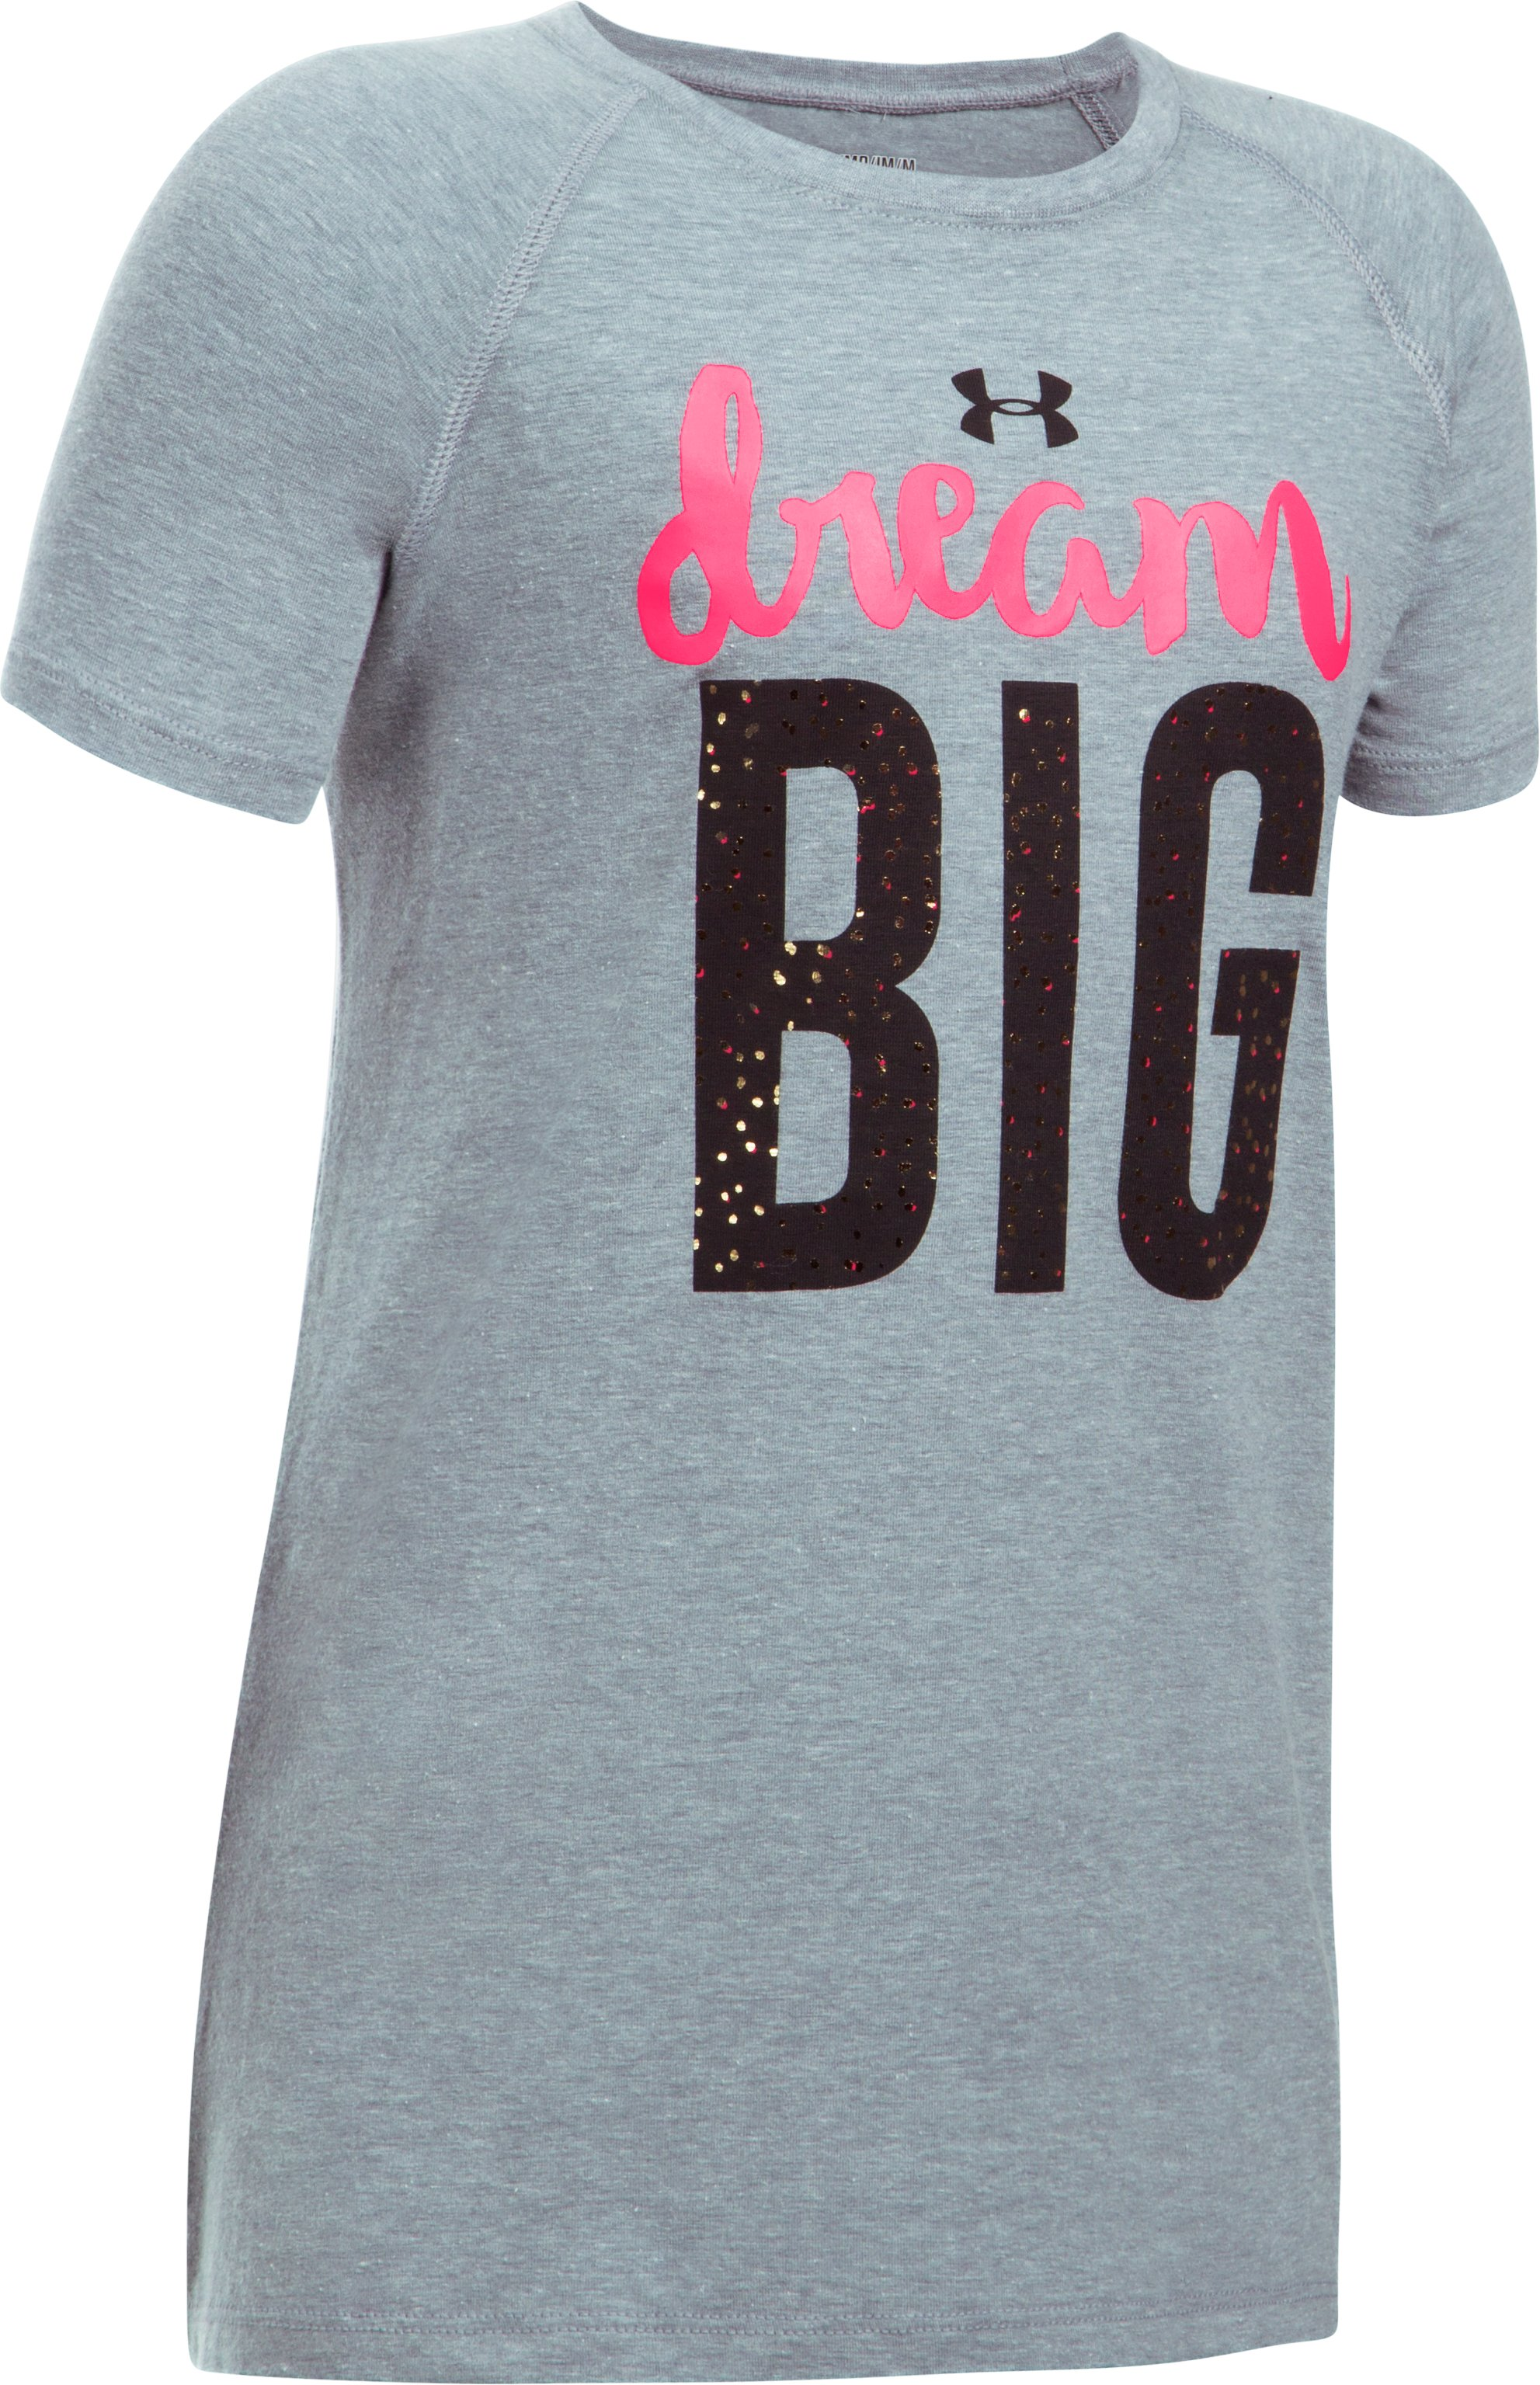 Girls' UA Dream Big Short Sleeve T-Shirt, STEEL LIGHT HEATHER, undefined